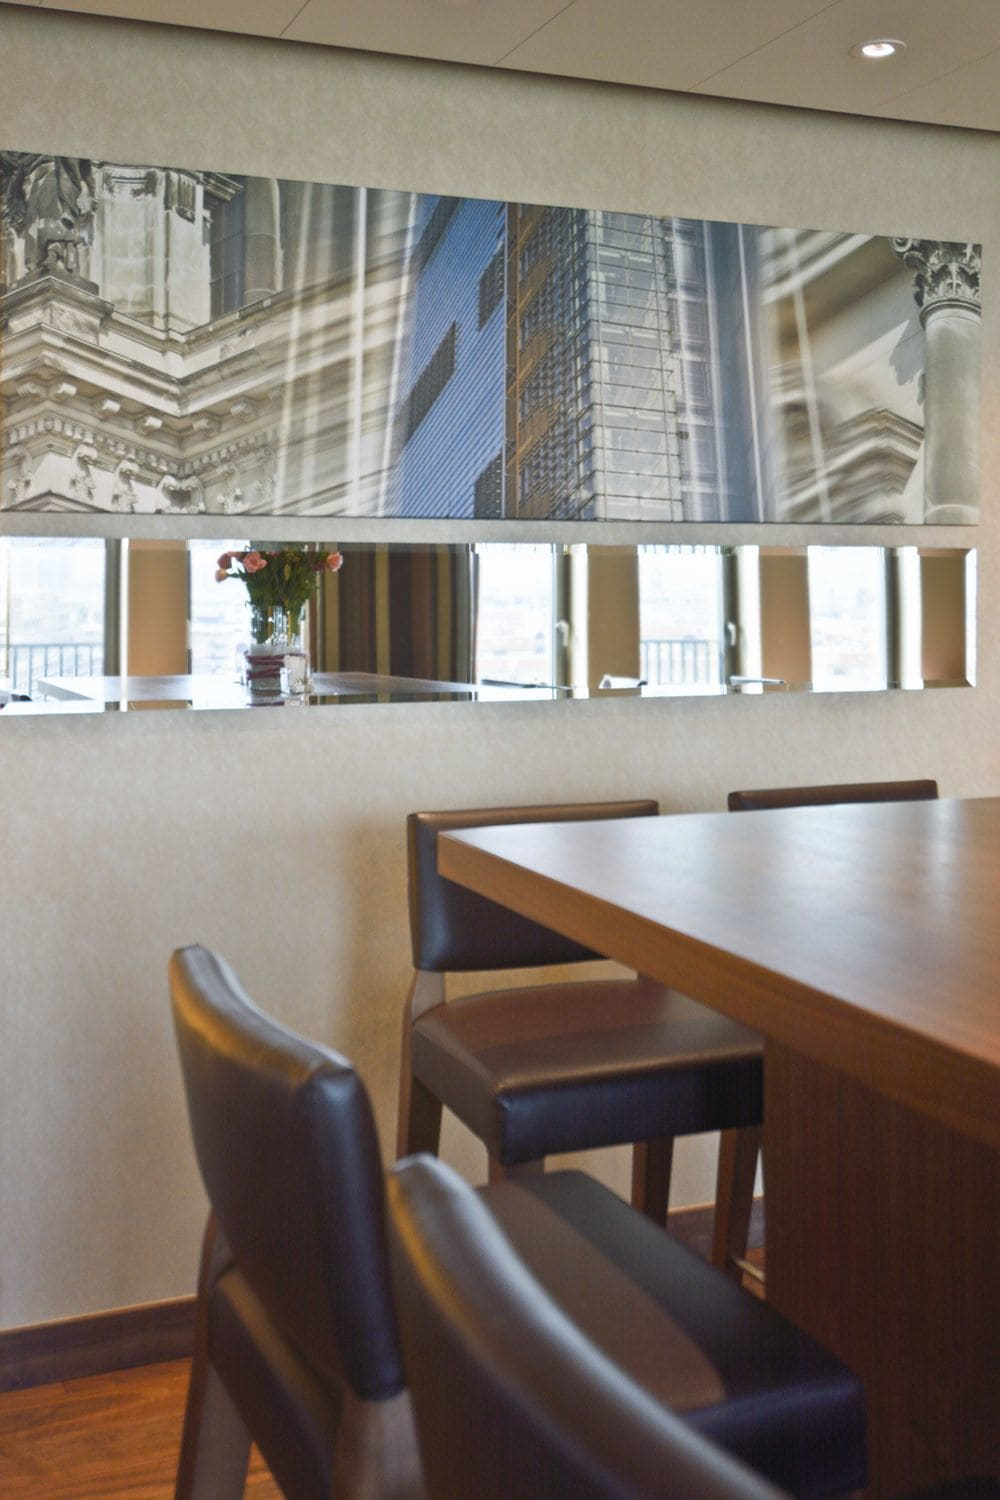 Photography by Rica Belna seen at Berlin Marriott Hotel, Berlin - Architectural Photography (Lounge Area): RicaBelna_Sanctus_40